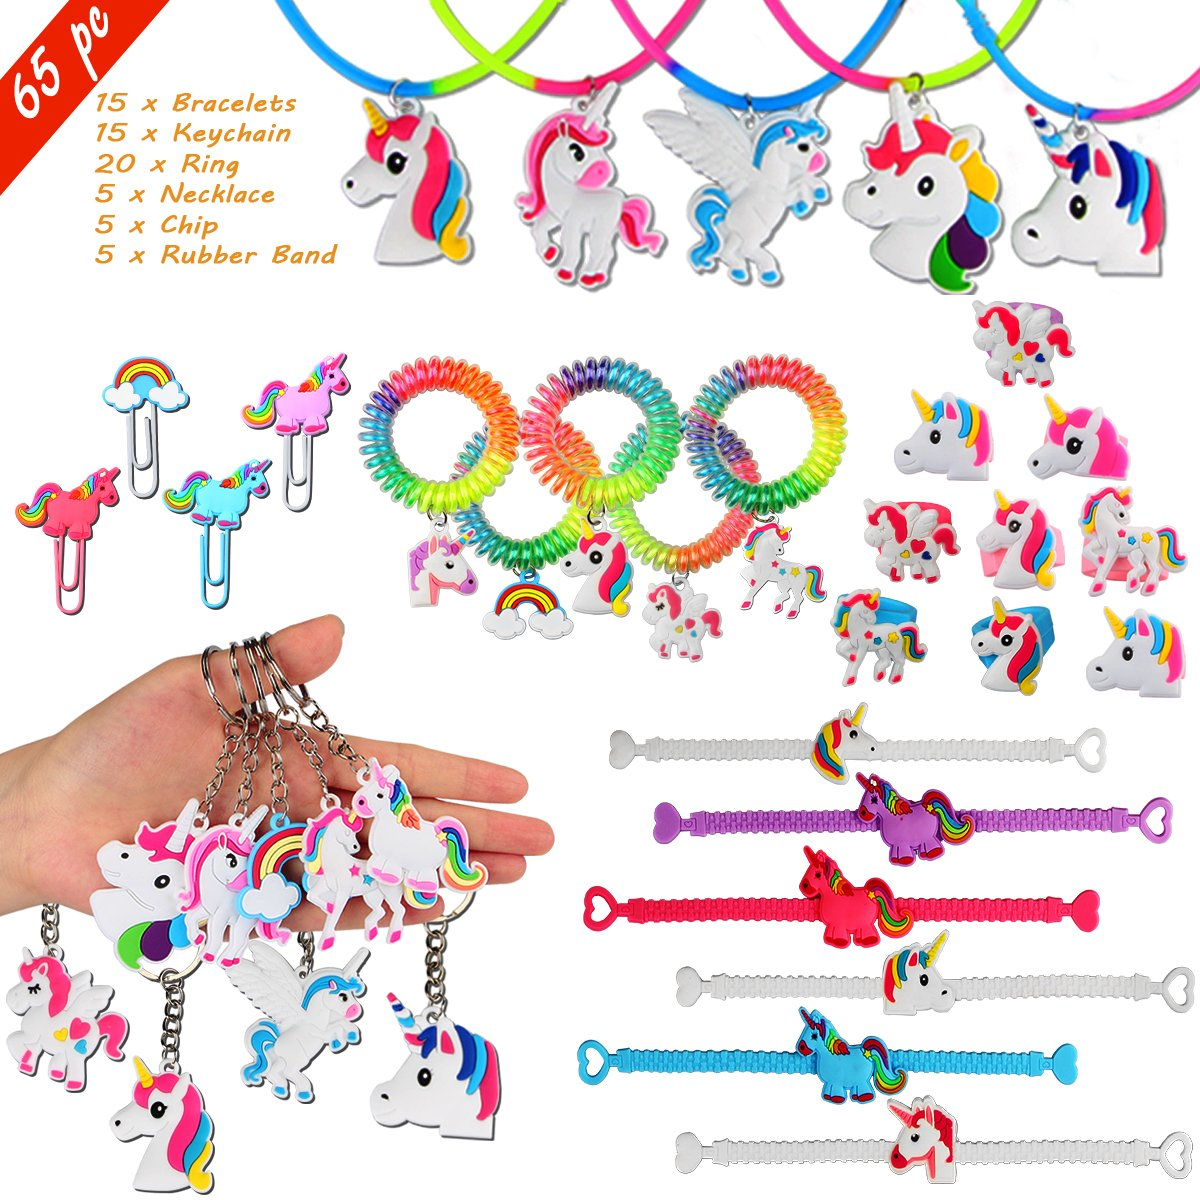 Aitey Unicorn Party Favors, Unicorn Bracelets, Rings, Necklace, Chip and Keychains, Rainbow Unicorn Birthday Party Supplies Set Prizes Gift for Kids and Girls (65 Packs)